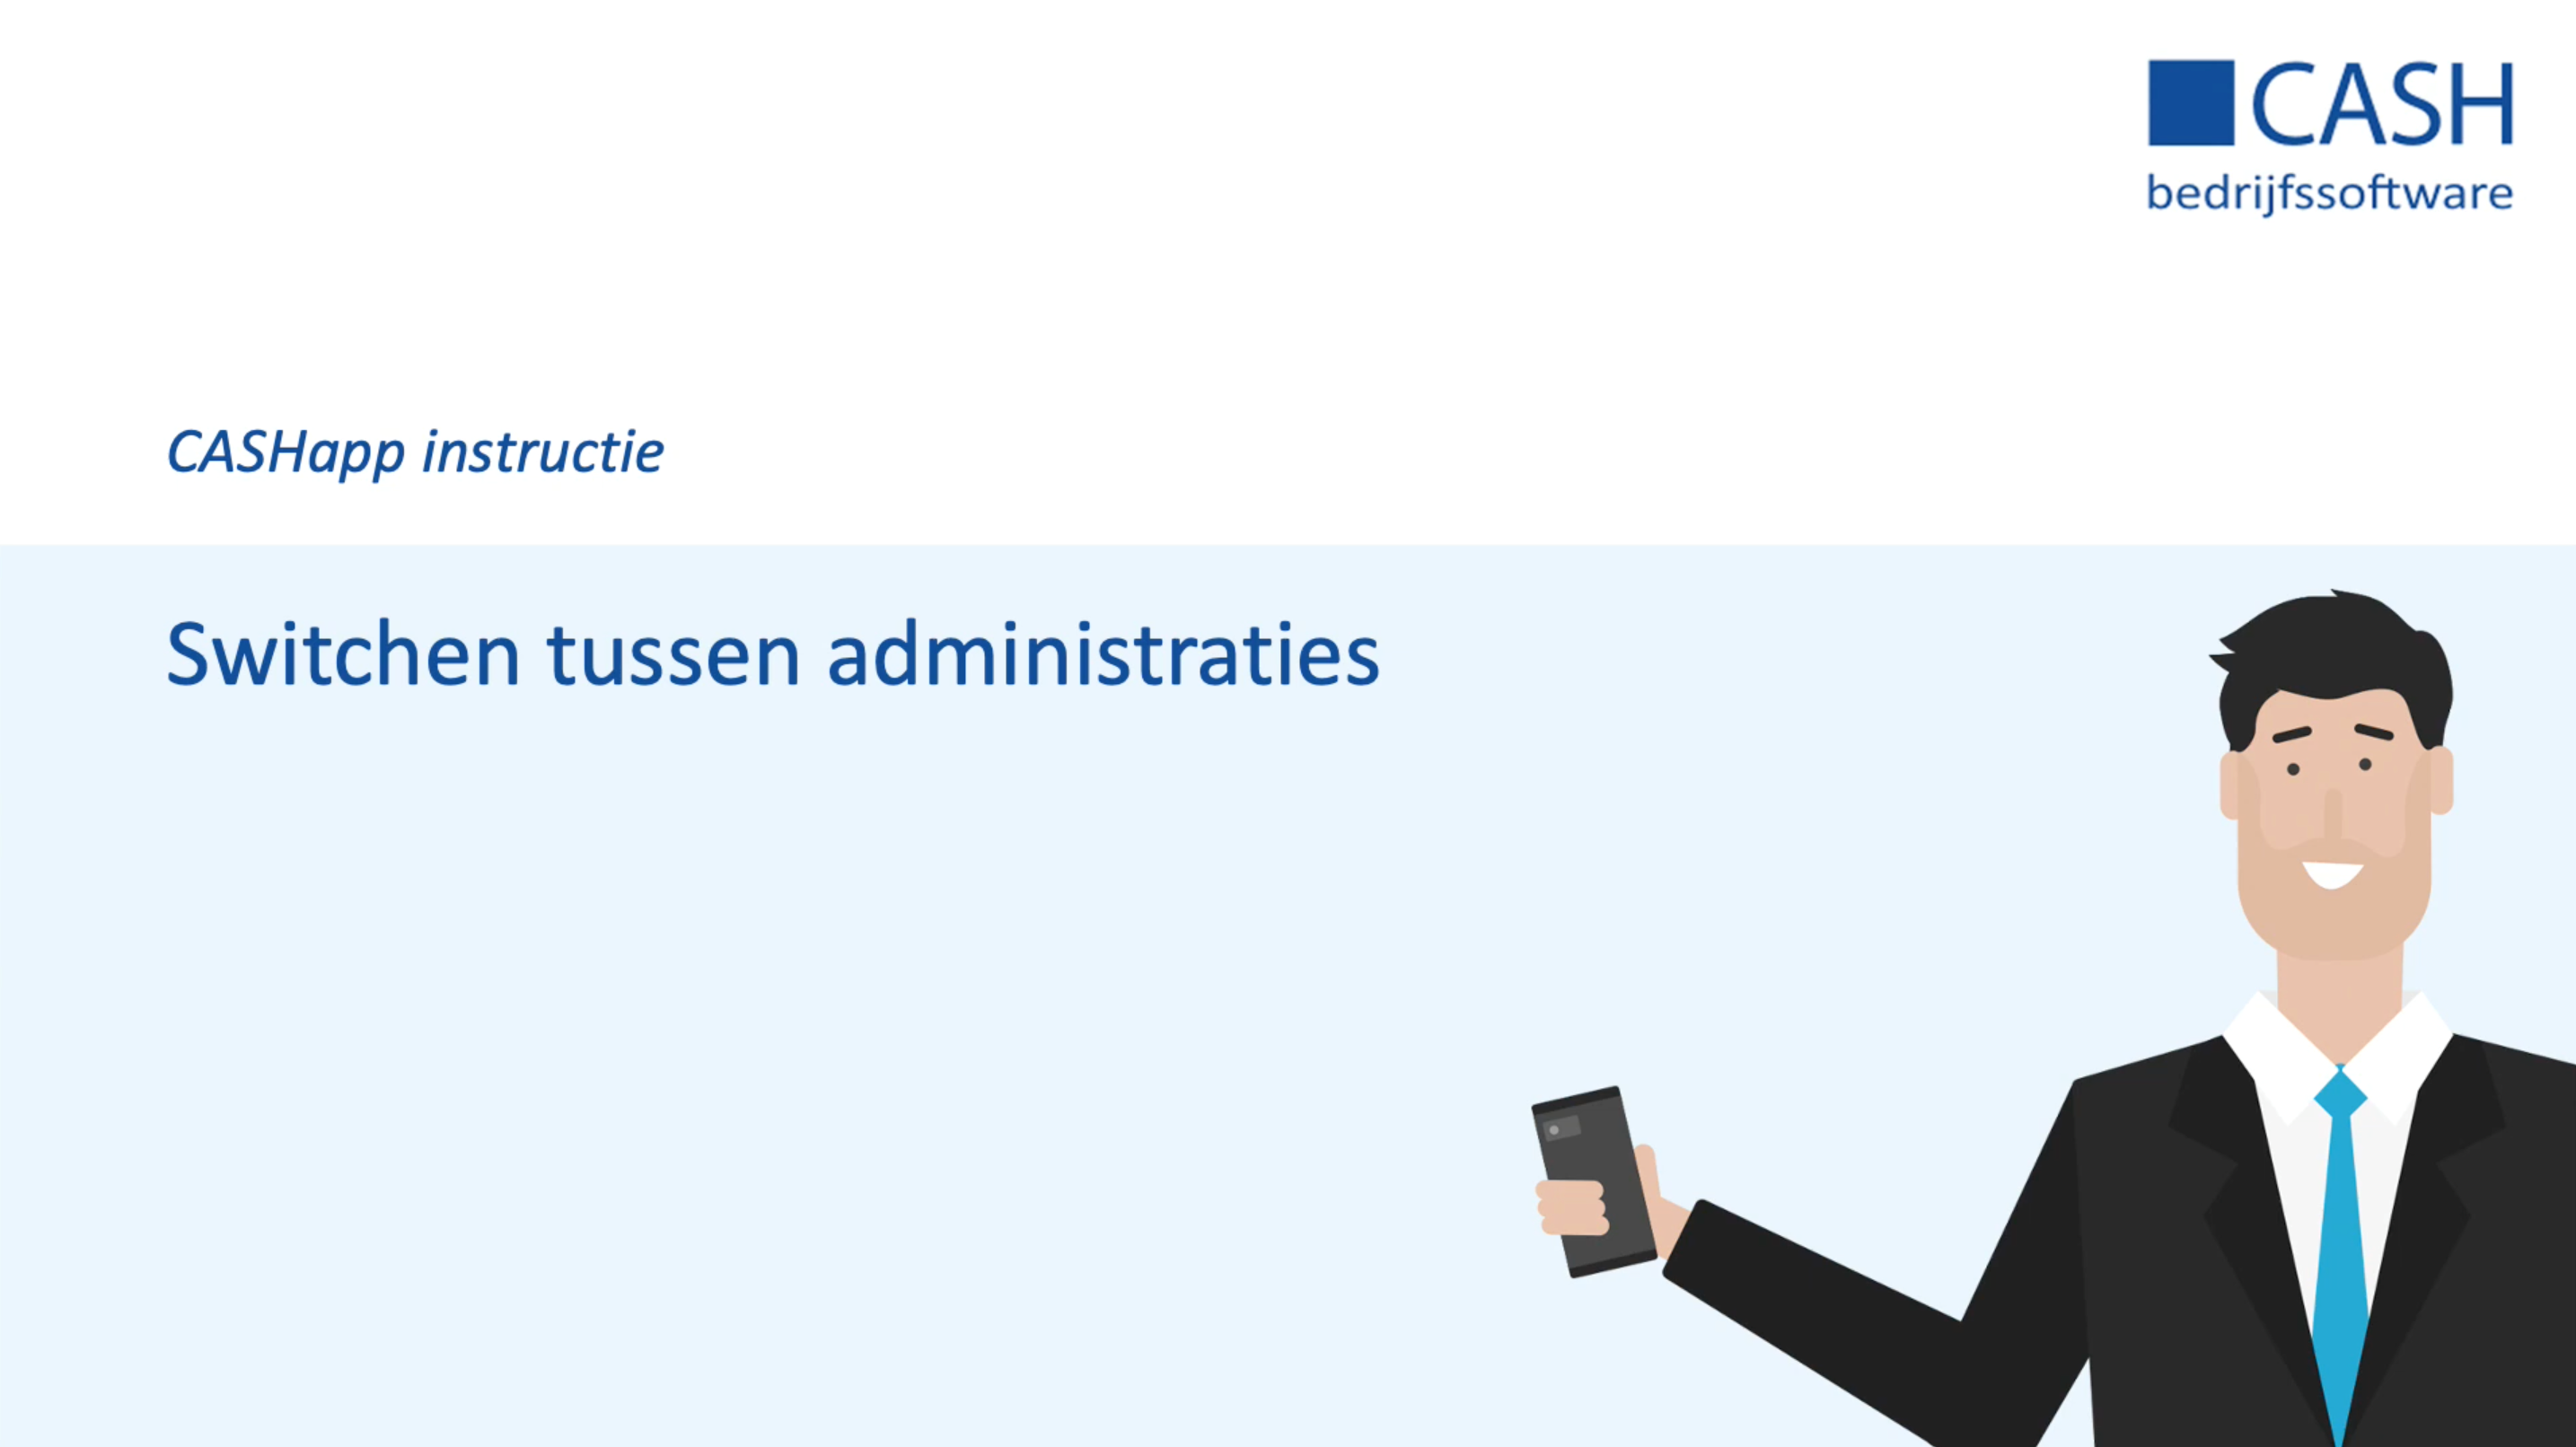 CASHapp instructie: Administraties